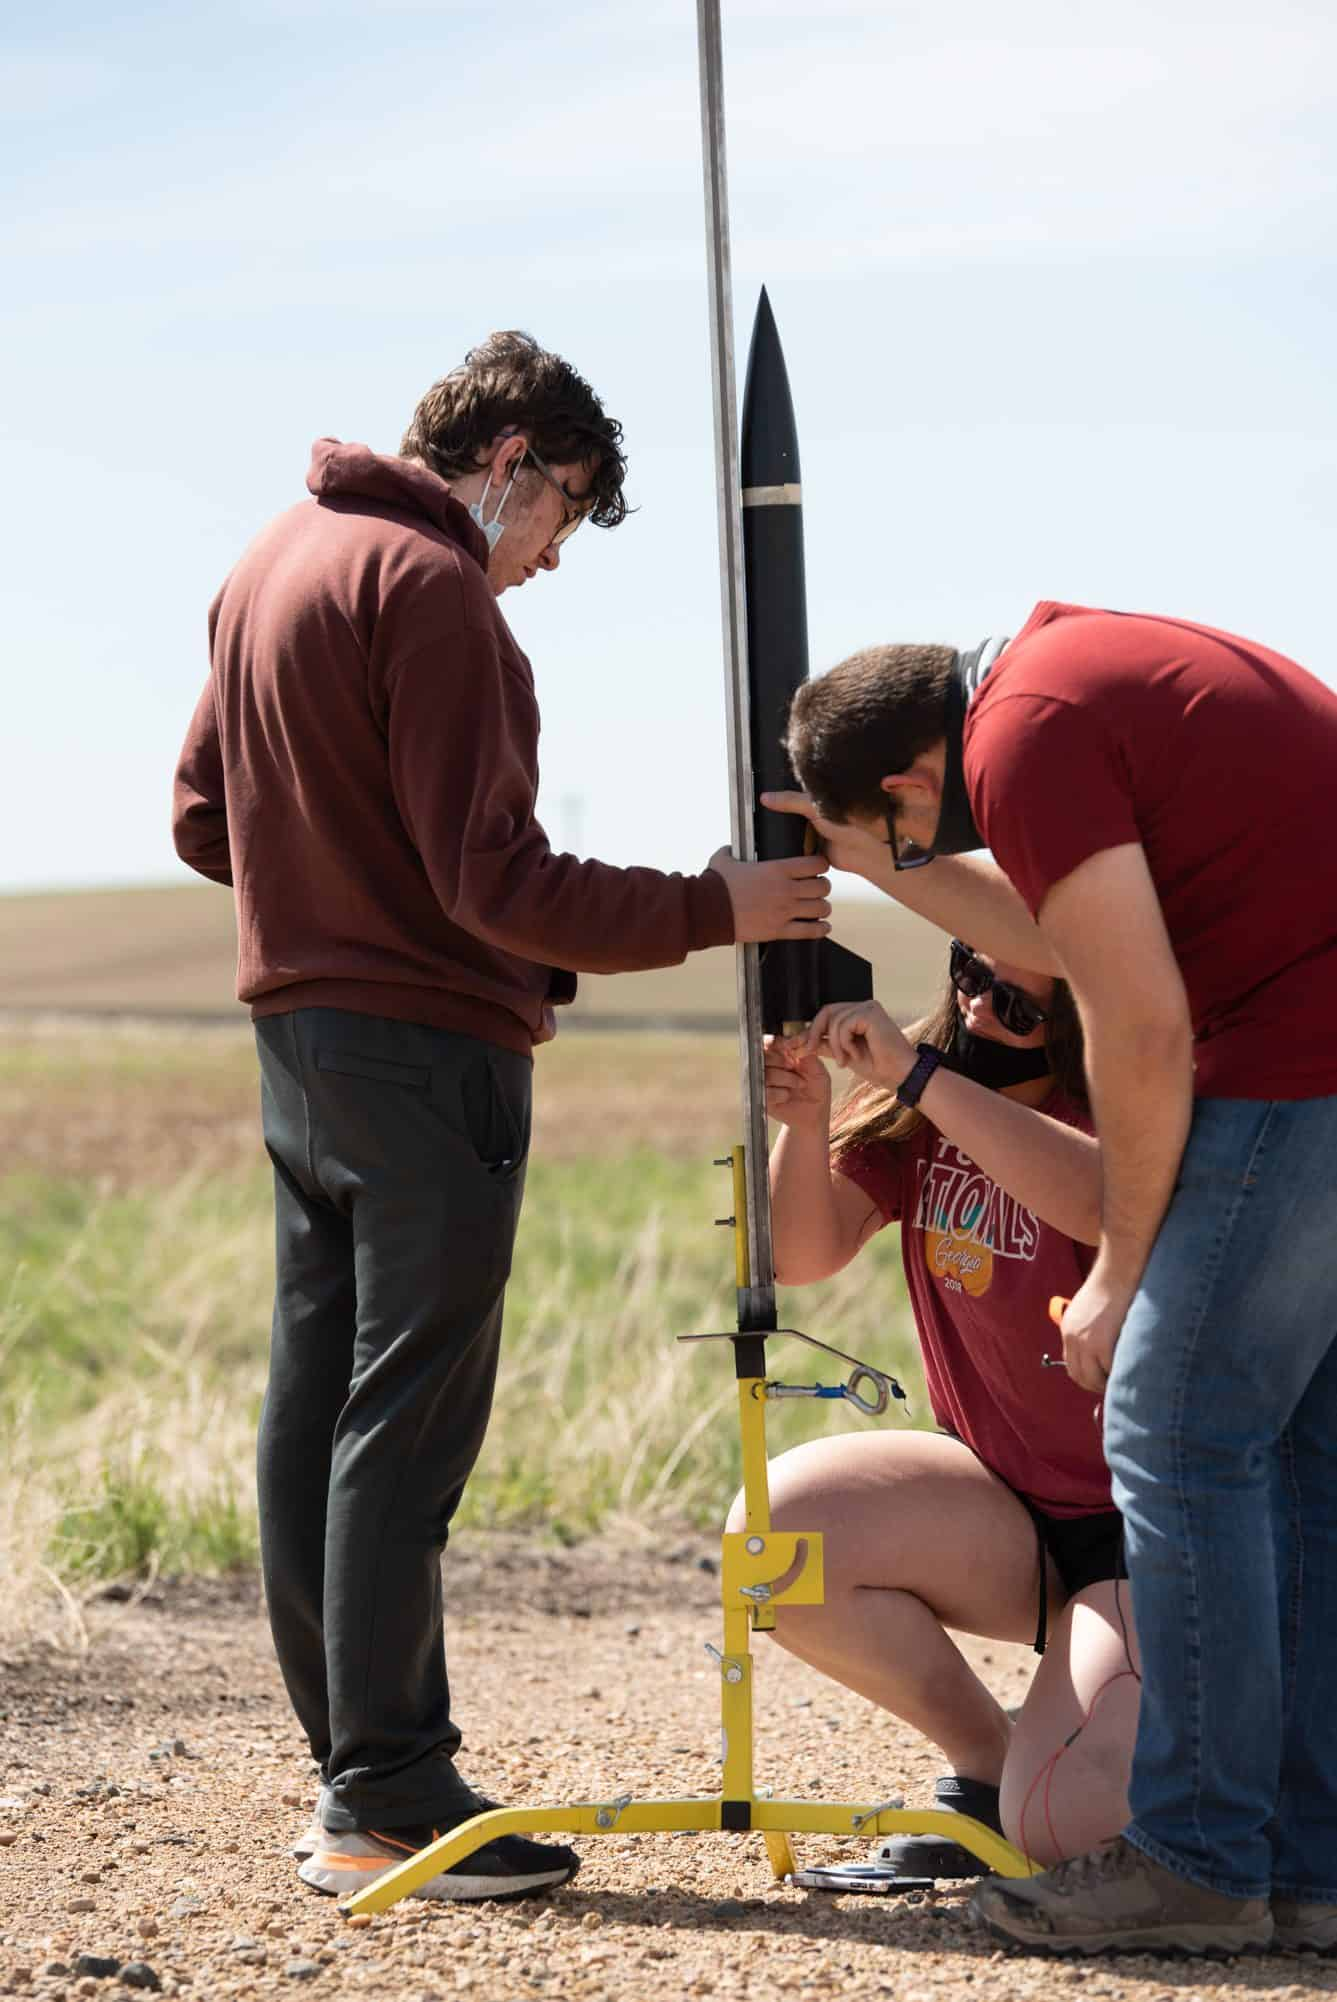 3 students gather and crouch around a rocket to prepare it to launch in a grassy field